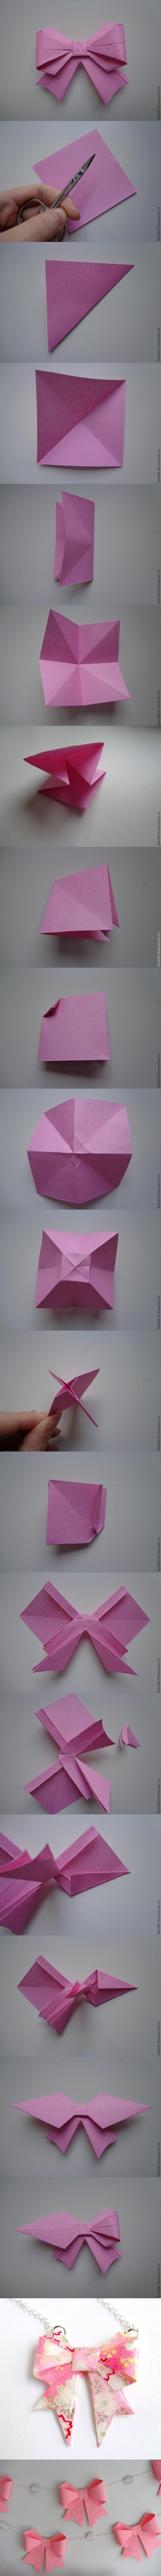 DIY Origami-Paper-Bow 3